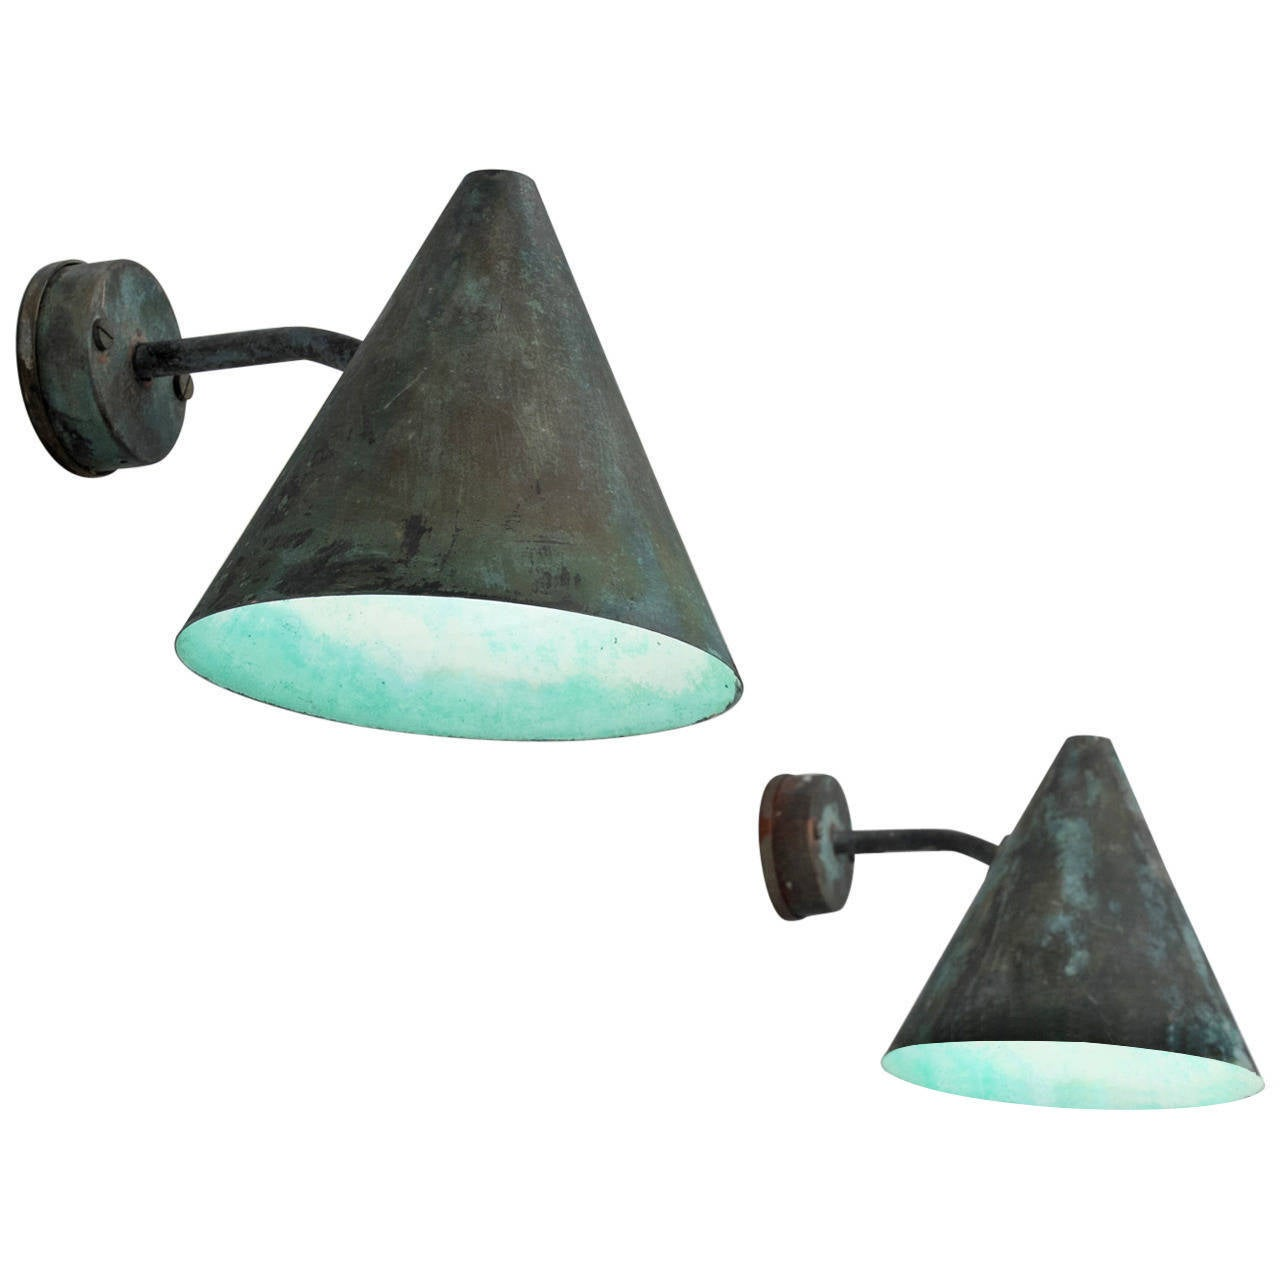 Seven hans agne jakobsson copper outdoor wall lights at 1stdibs seven hans agne jakobsson copper outdoor wall lights 1 arubaitofo Image collections